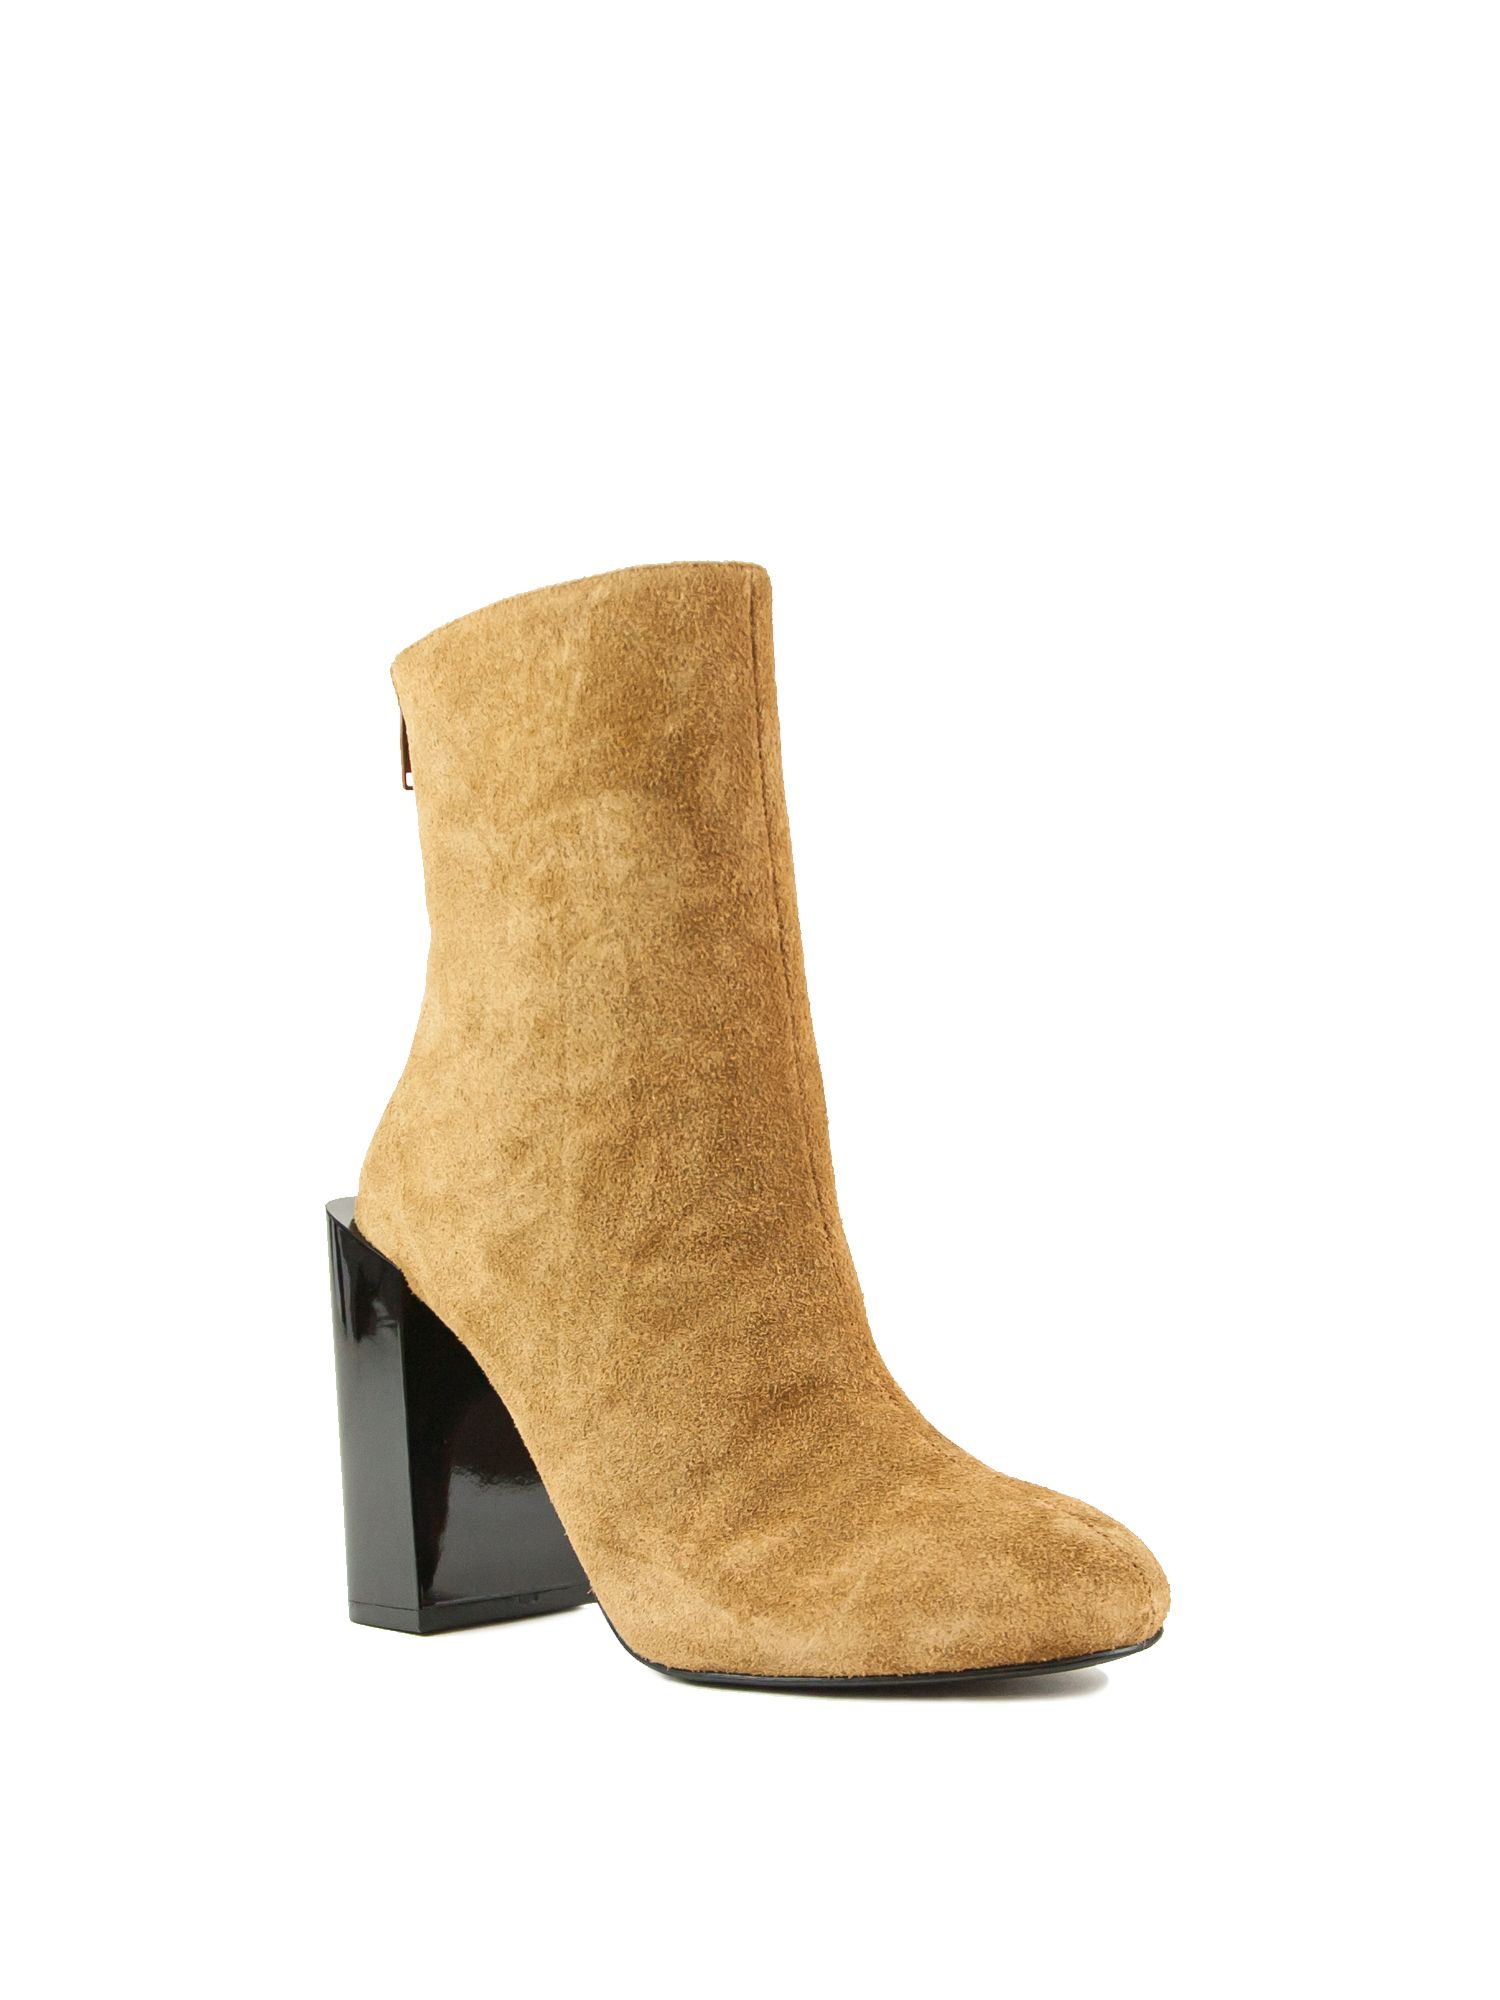 Shellys London Shellys London Lincoln feature ankle boots, Brown